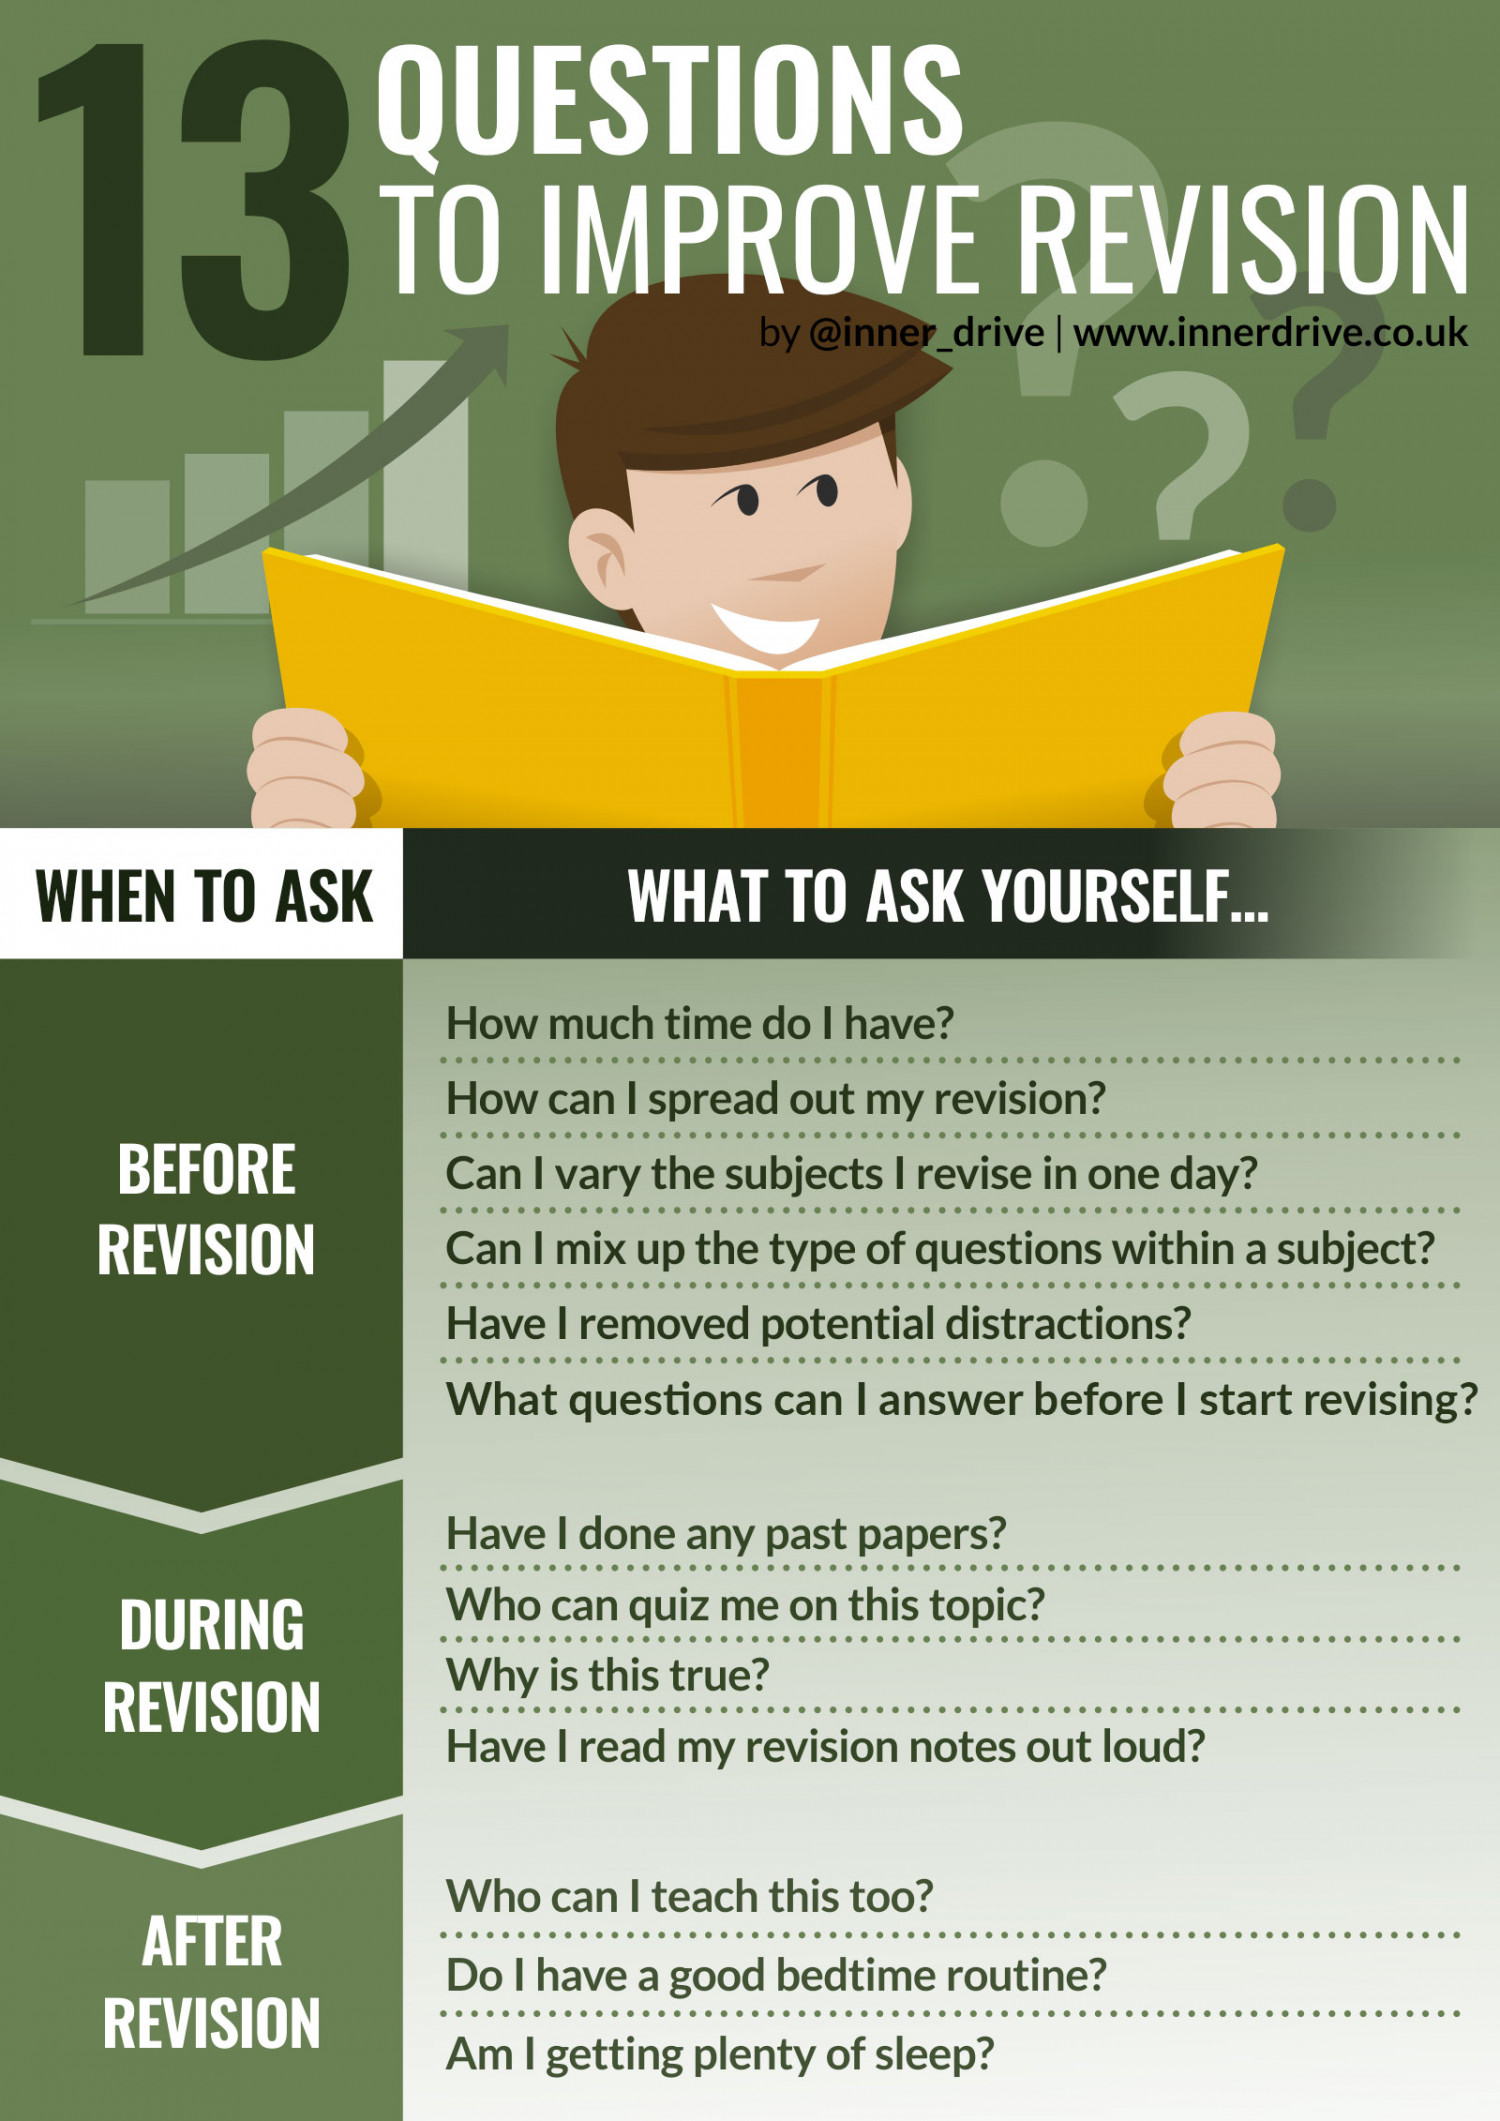 13 Questions to Improve Revision Infographic